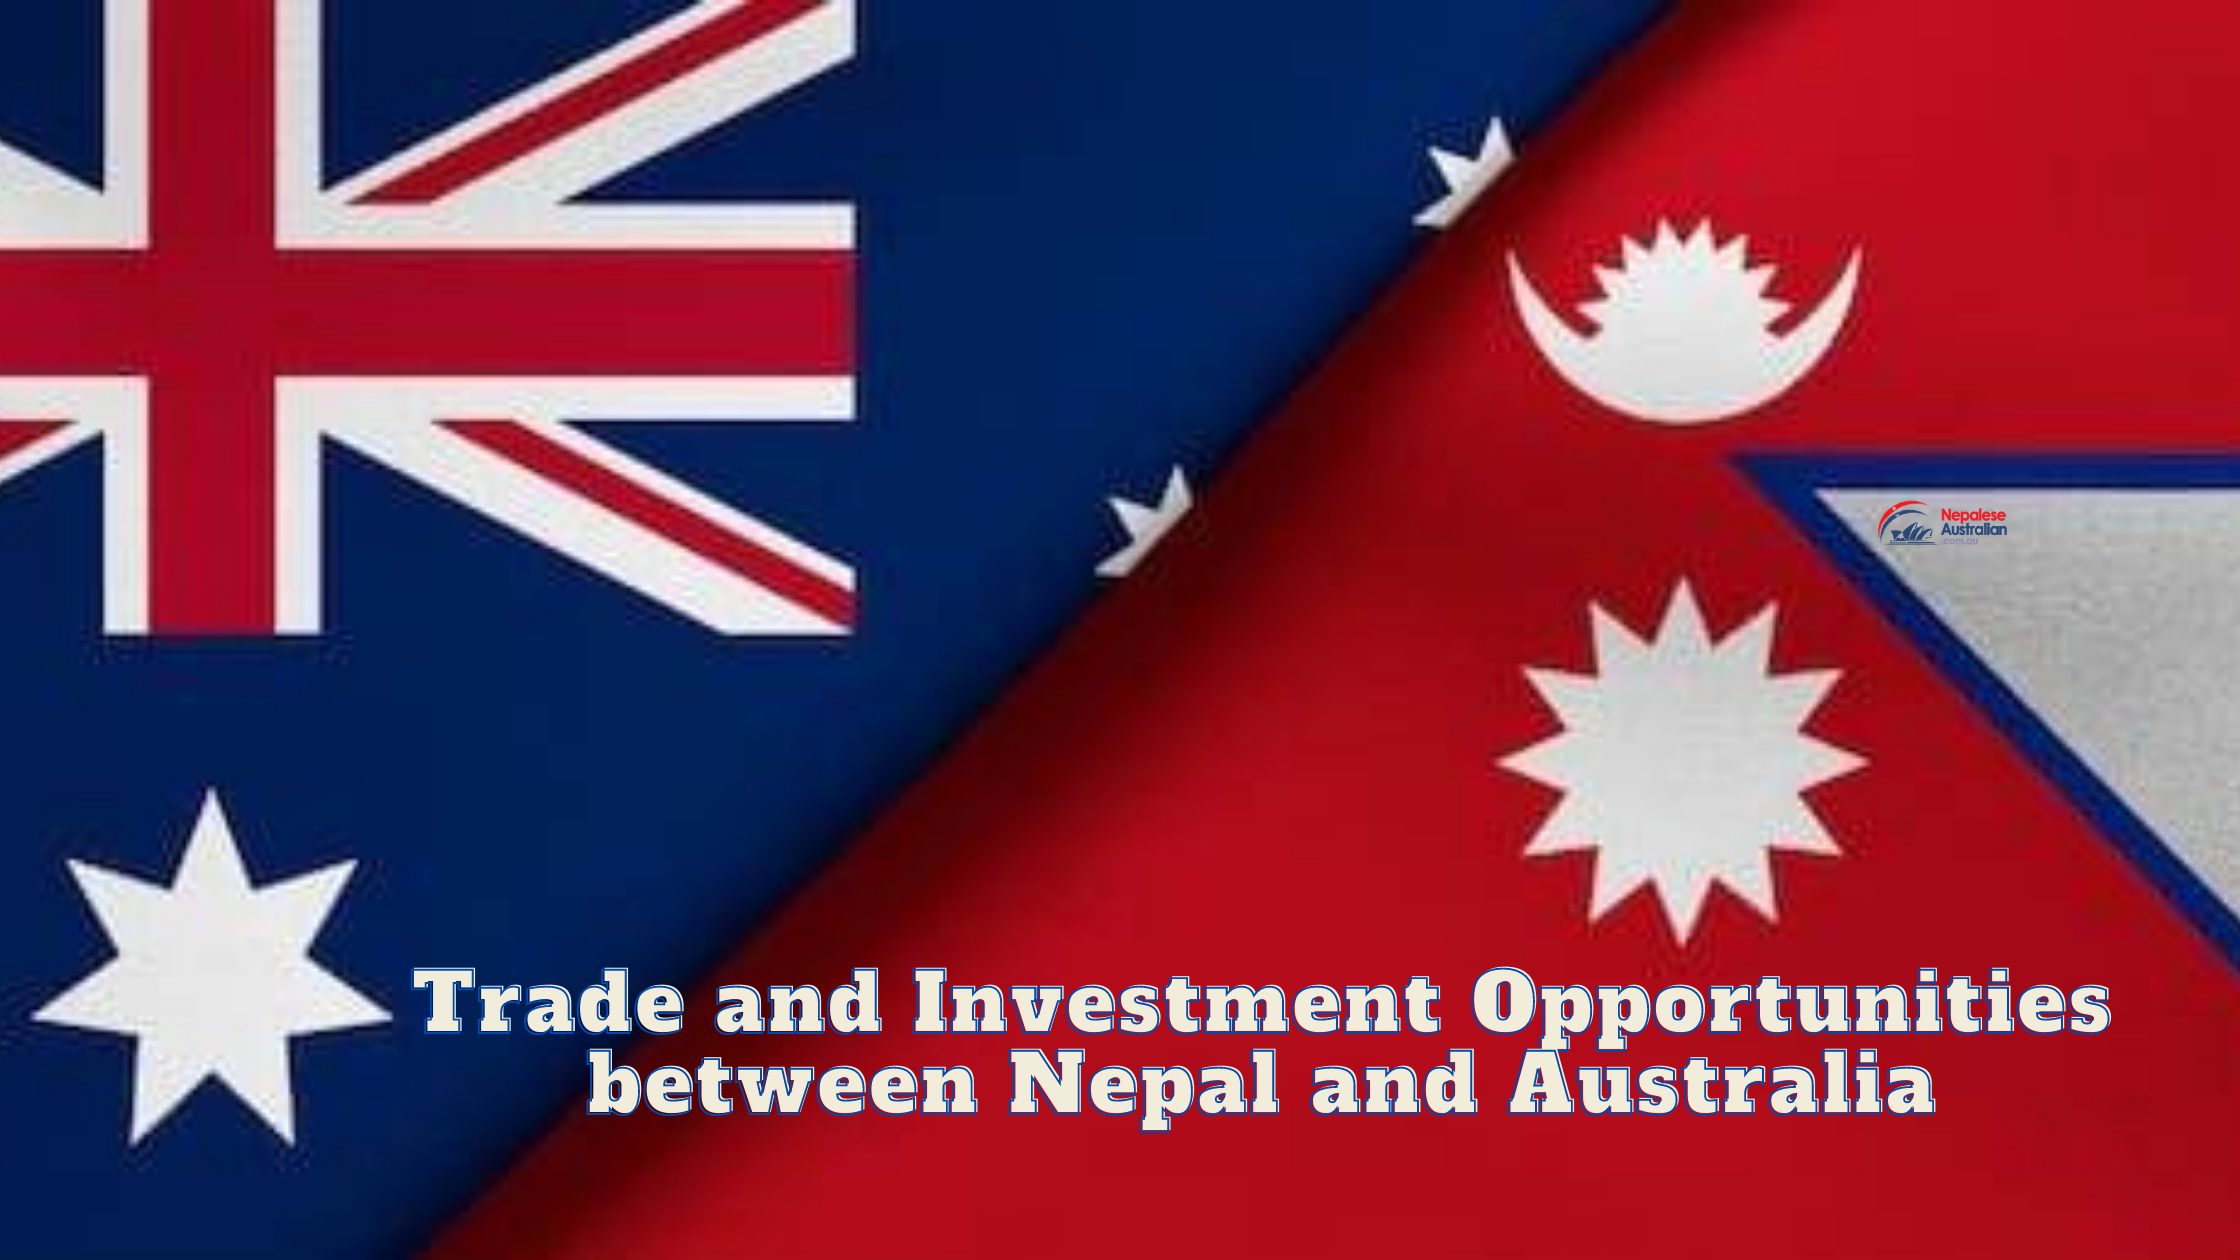 Discussion about Trade and Investment Opportunitiesbetween Nepal and Australia